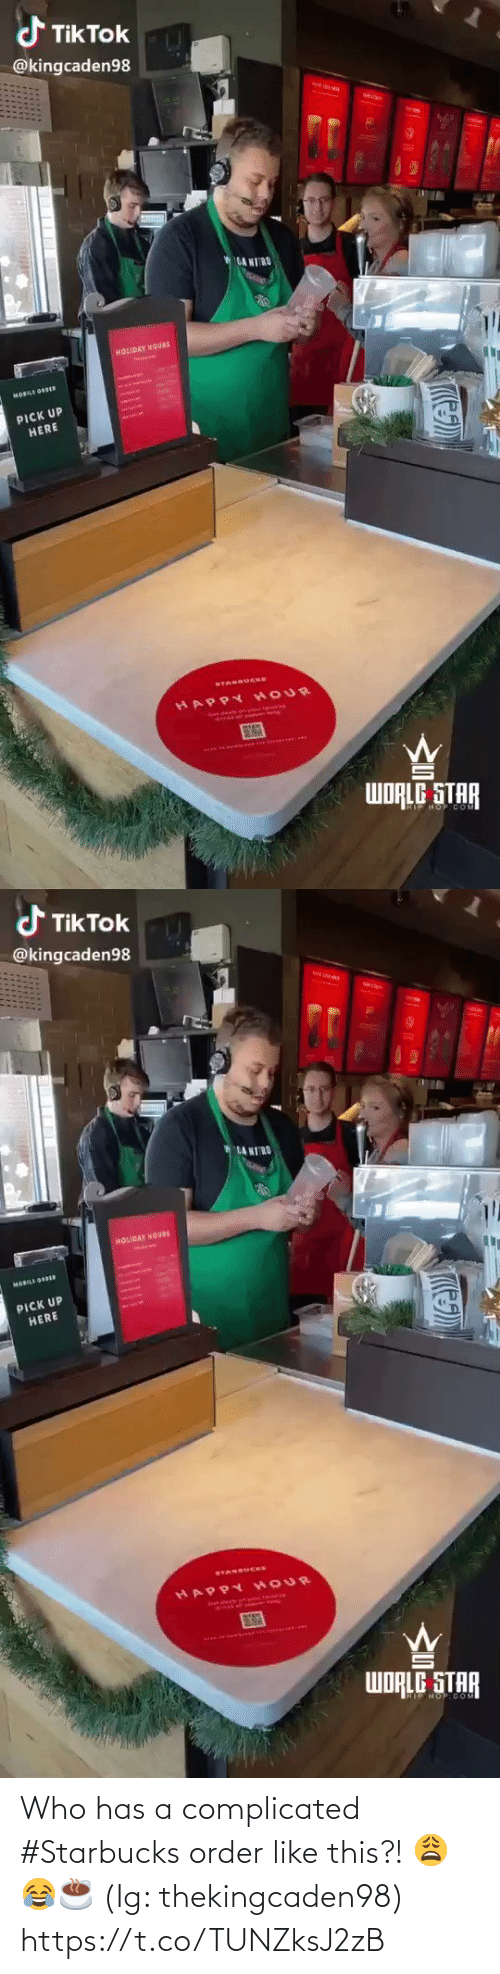 pan: d TikTok  @kingcaden98  LA MIRO  HOLIDAY MOURS  AntAeBet  MOBILE ORDR  PICK UP  HERE  STARBUCKS  HAPPY HOUR  SY  PAN TO.A  WORLE STAR  HOP COM  T   d TikTok  @kingcaden98  MIN  LA NIRO  HOLIDAY MOURS  HOBILI ODE  PICK UP  HERE  SYAREUCHS  HAPPY HOUR  WORLE STAR  HOP COM  T Who has a complicated #Starbucks order like this?! 😩😂☕️ (Ig: thekingcaden98) https://t.co/TUNZksJ2zB